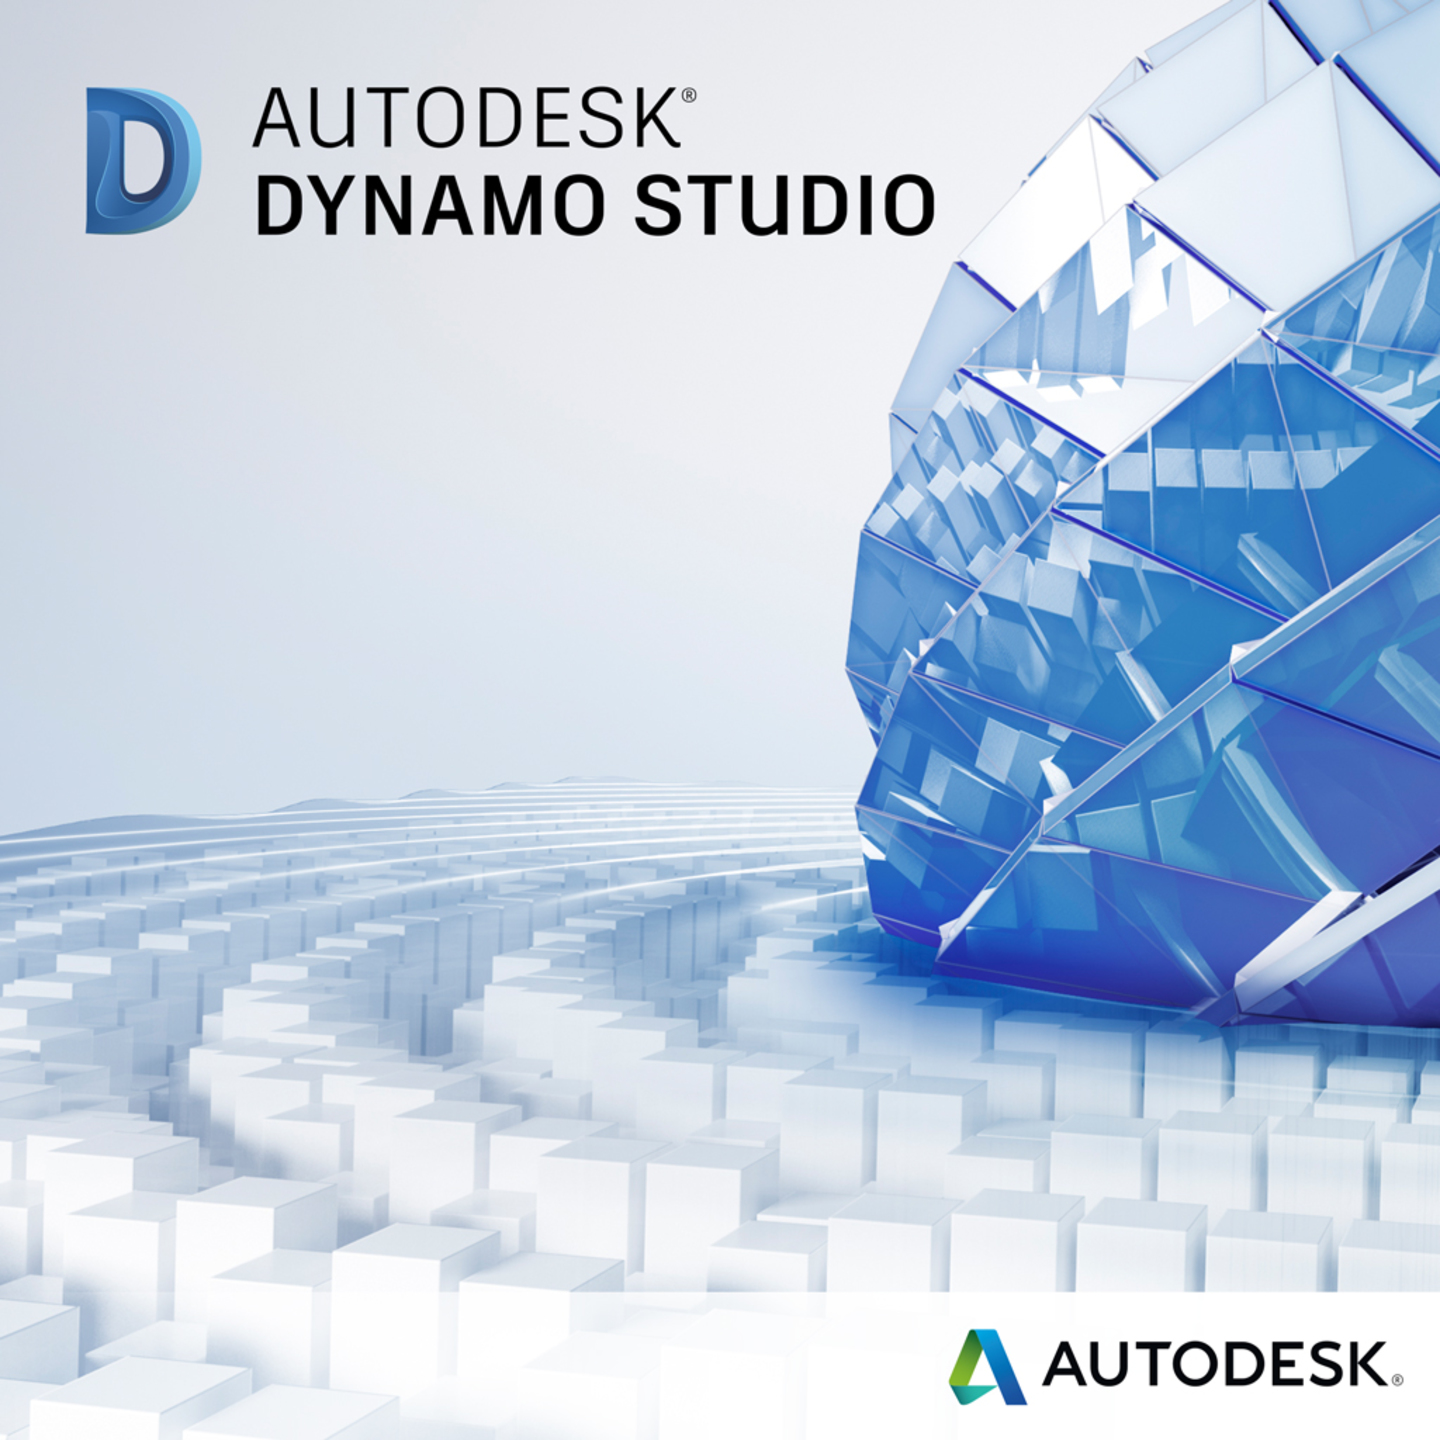 AUTODESK DYNAMO STUDIO FOR REVIT